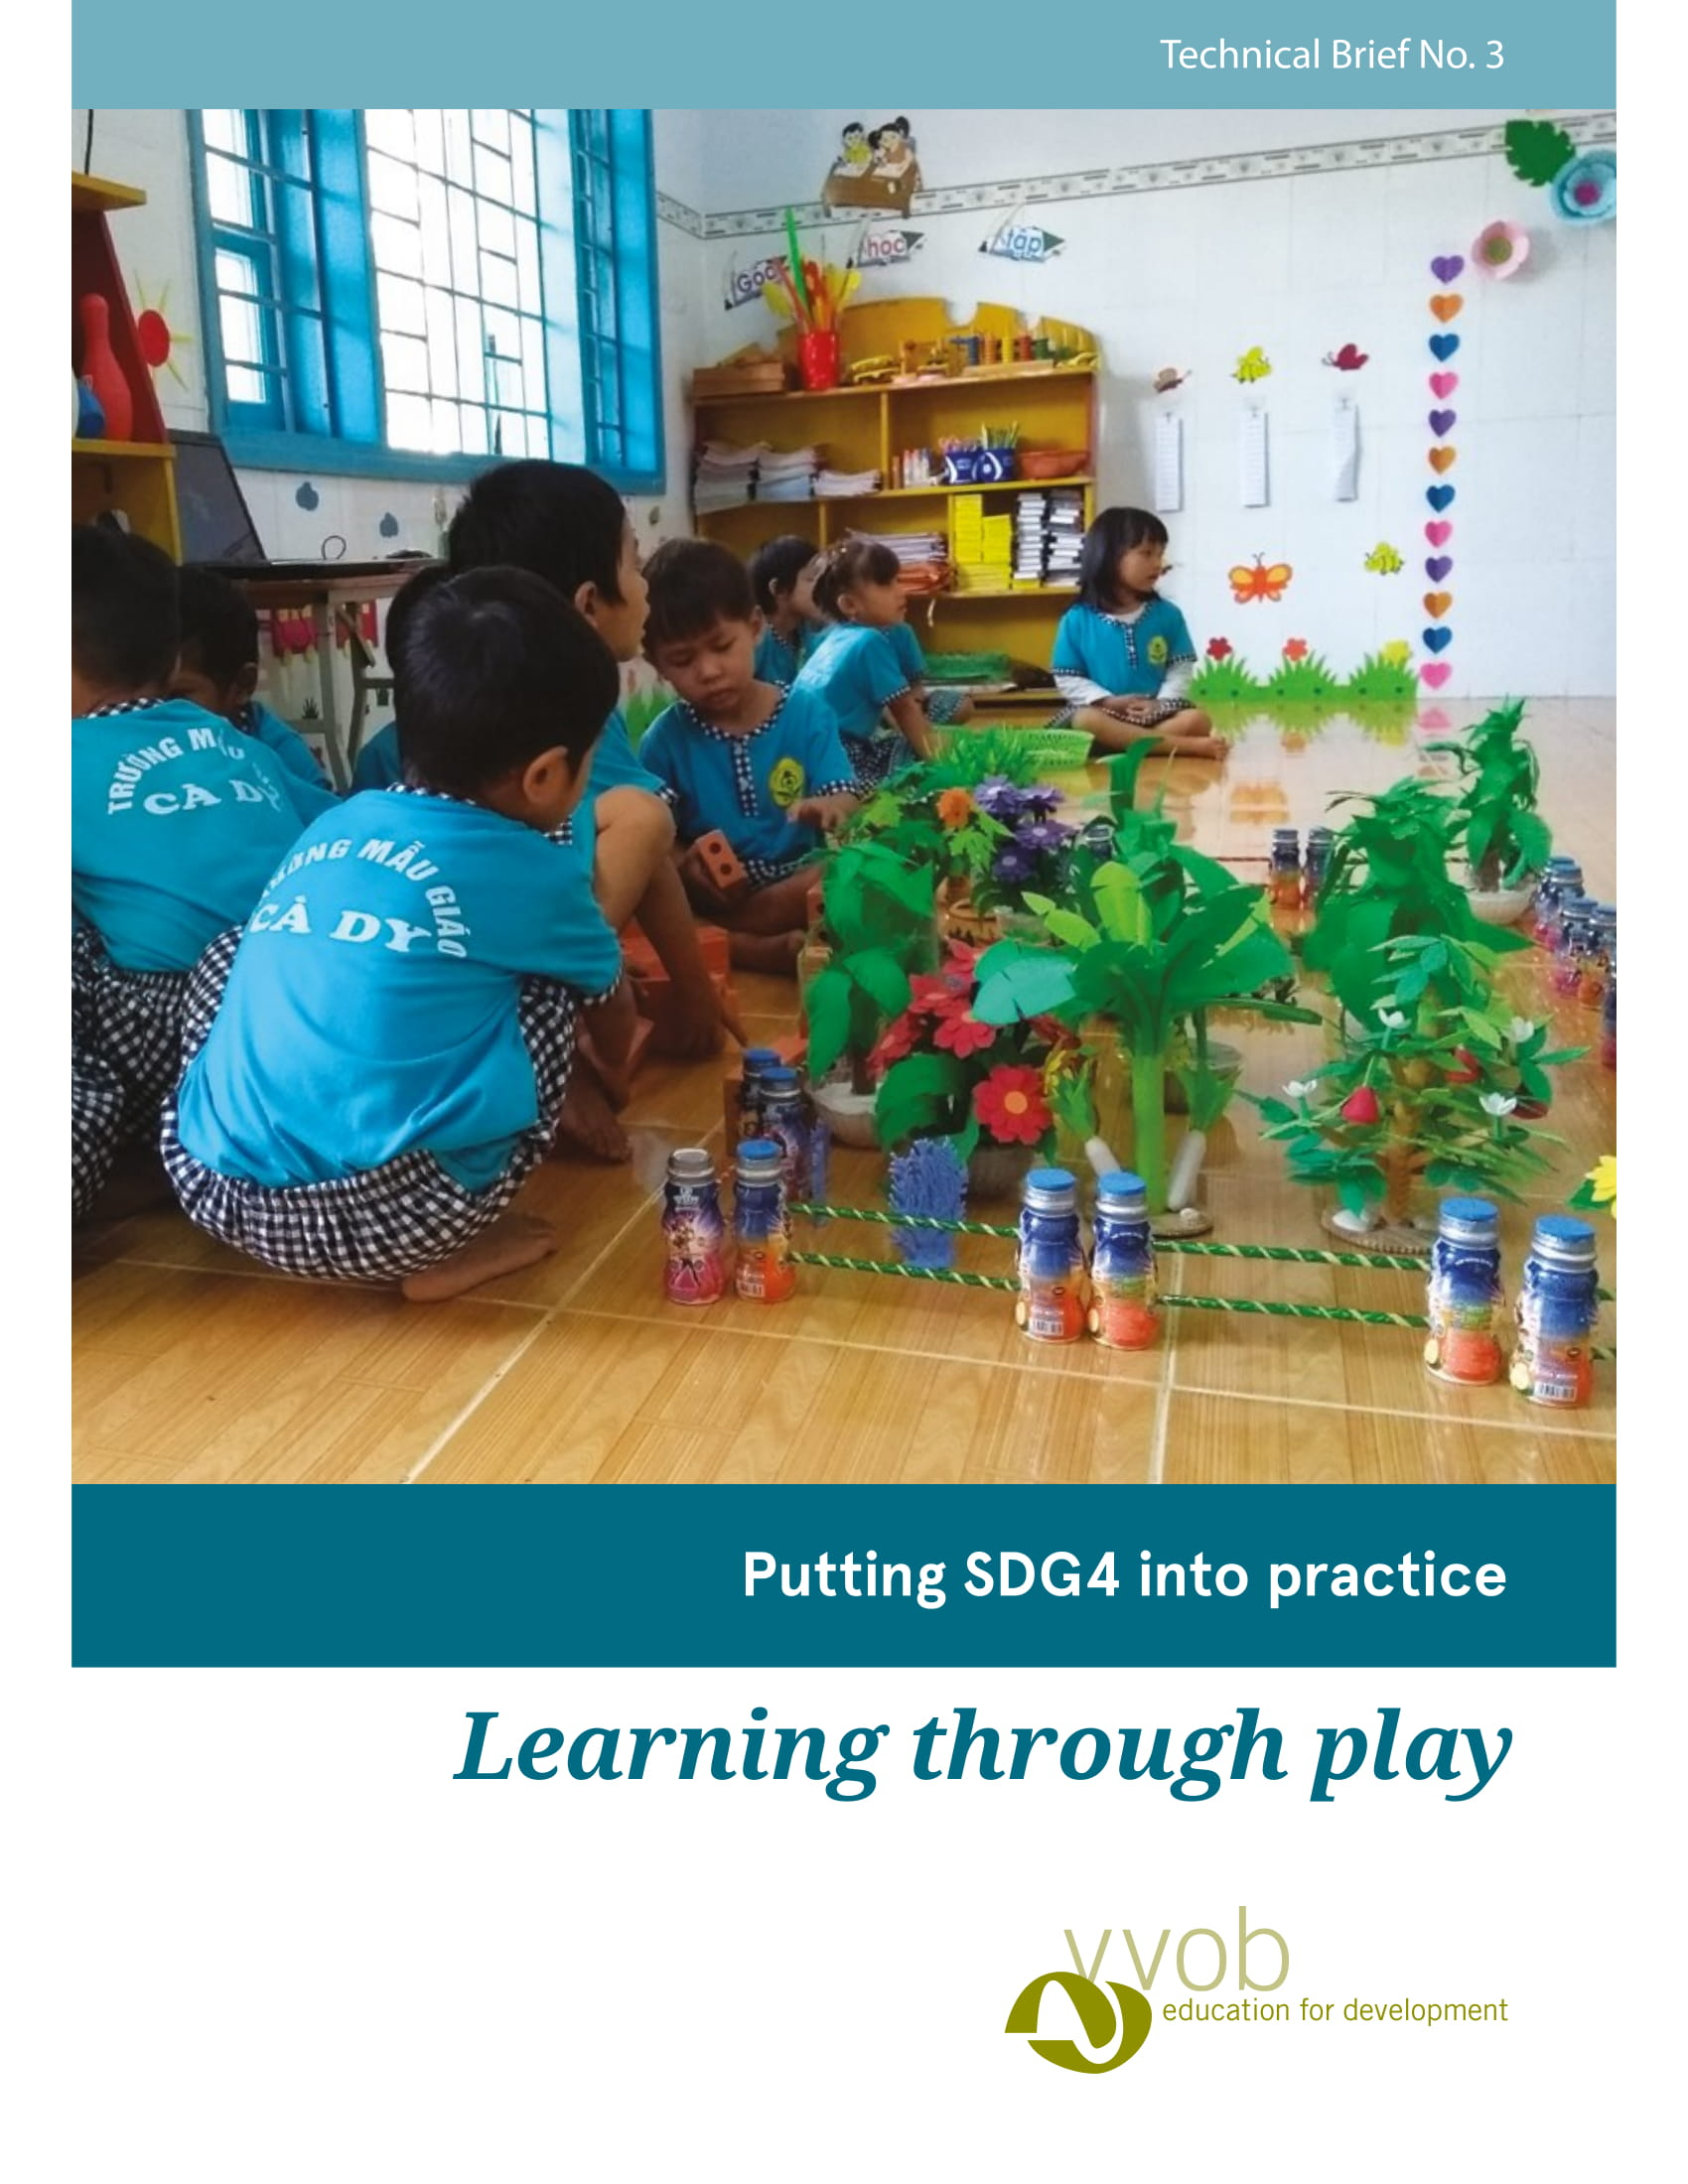 Learning Through Play >> Technical Brief 3 Learning Through Play Vvob Vzw